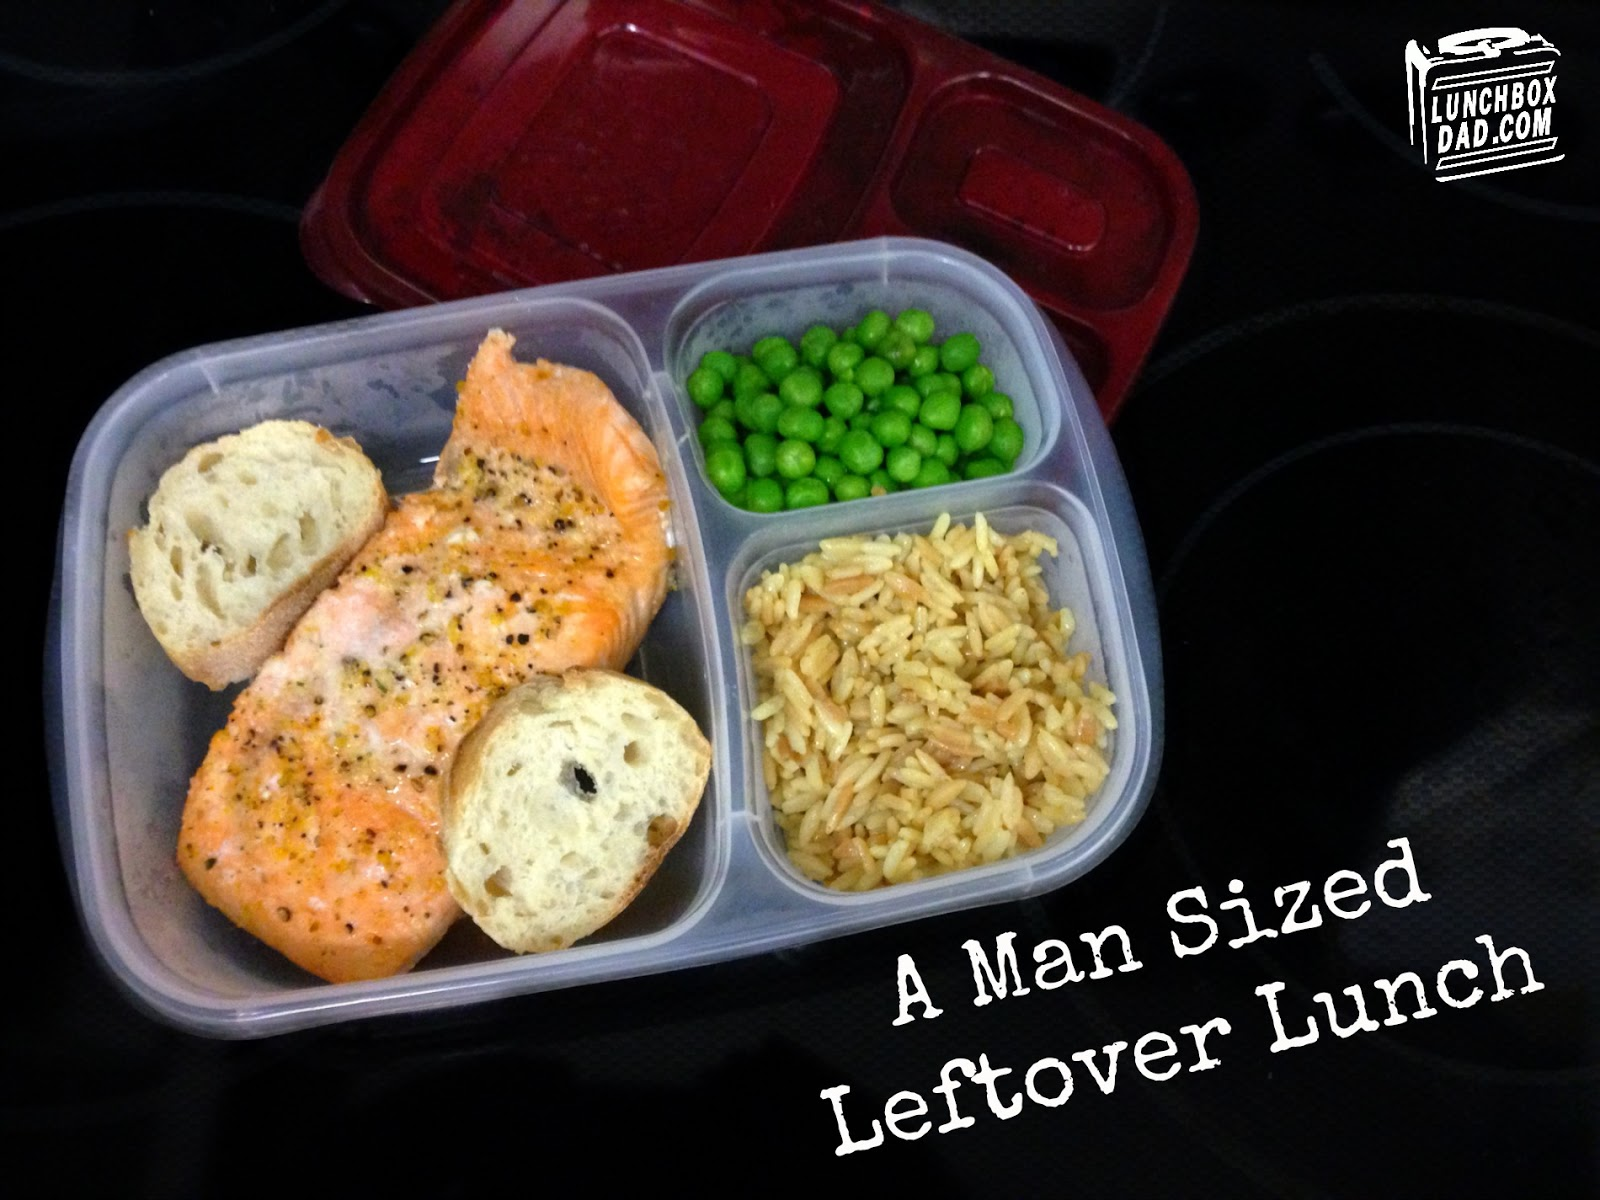 A Man Sized Leftover Lunch